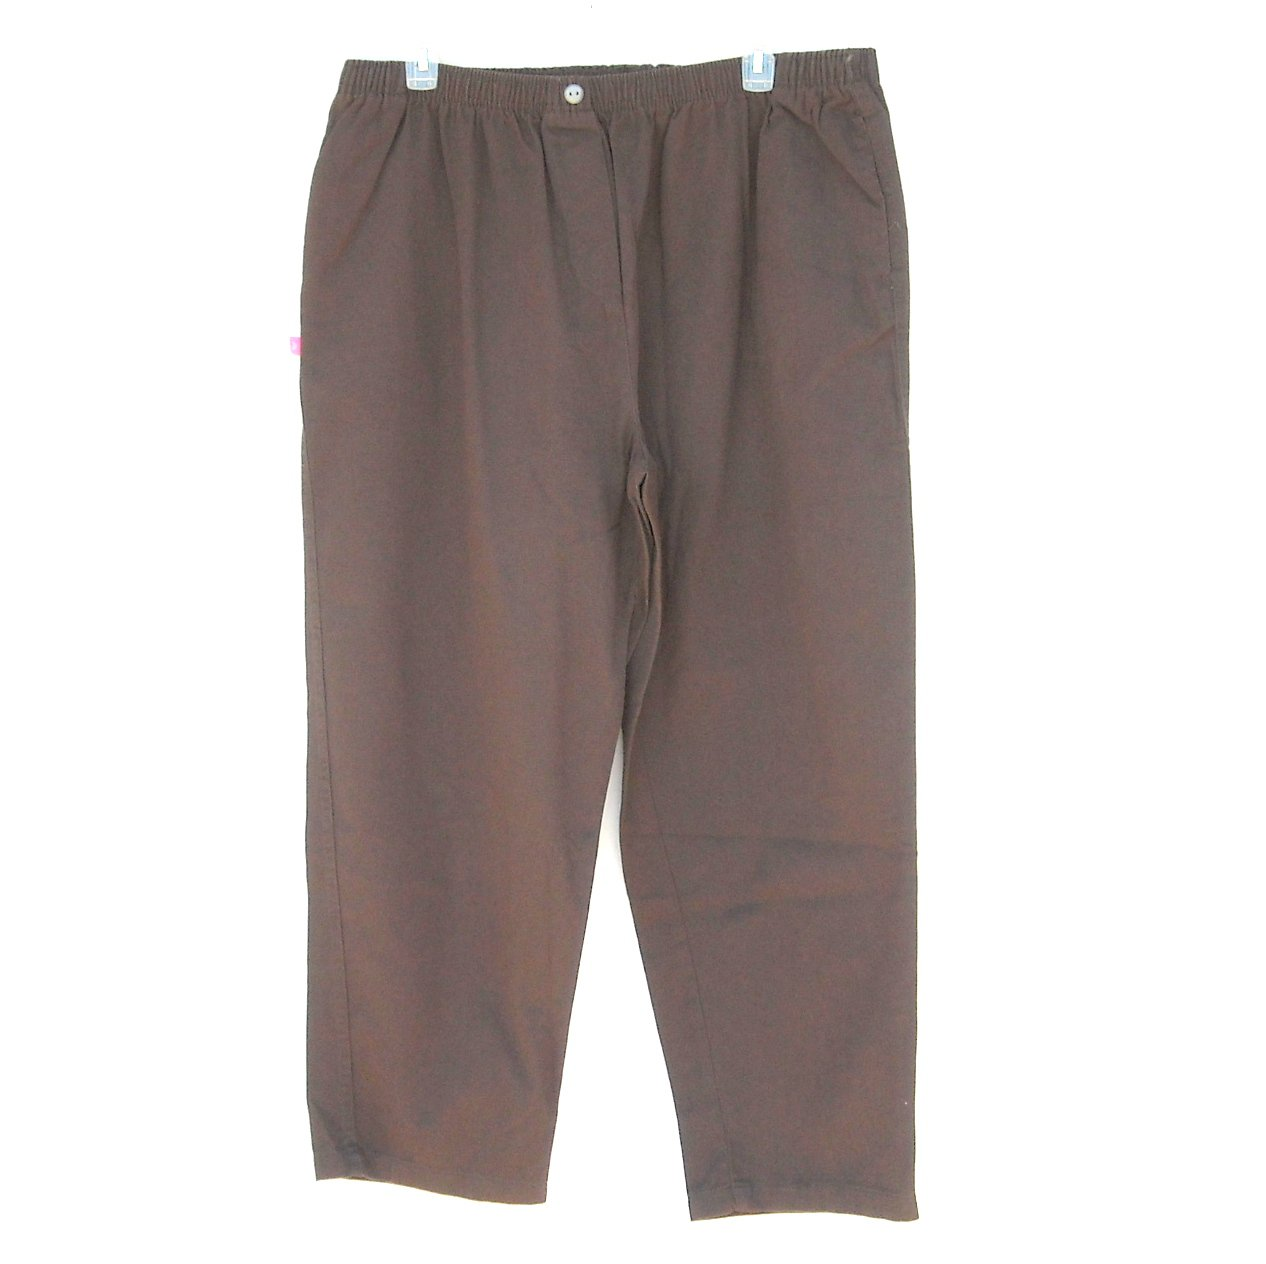 Woman Within Brown Casual Pants Plus size 26 W